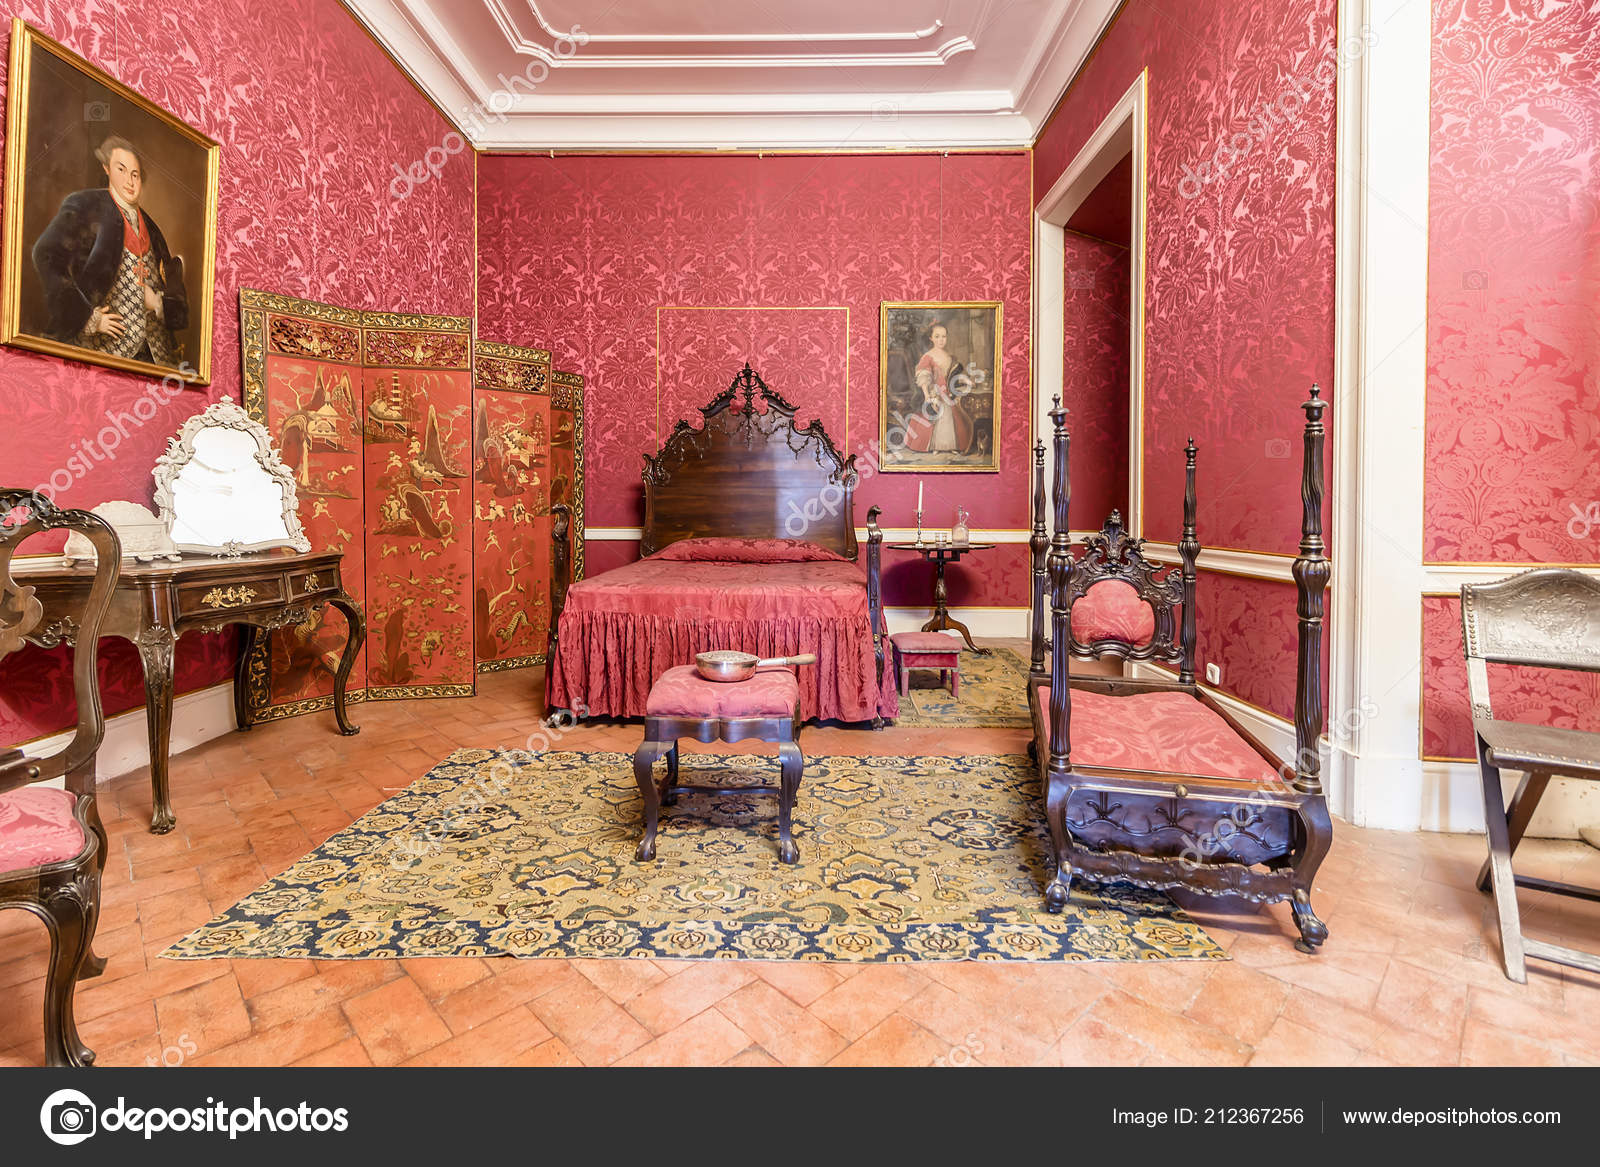 Bedroom Rich Decorated Queluz Royal Palace Formerly Used Summer